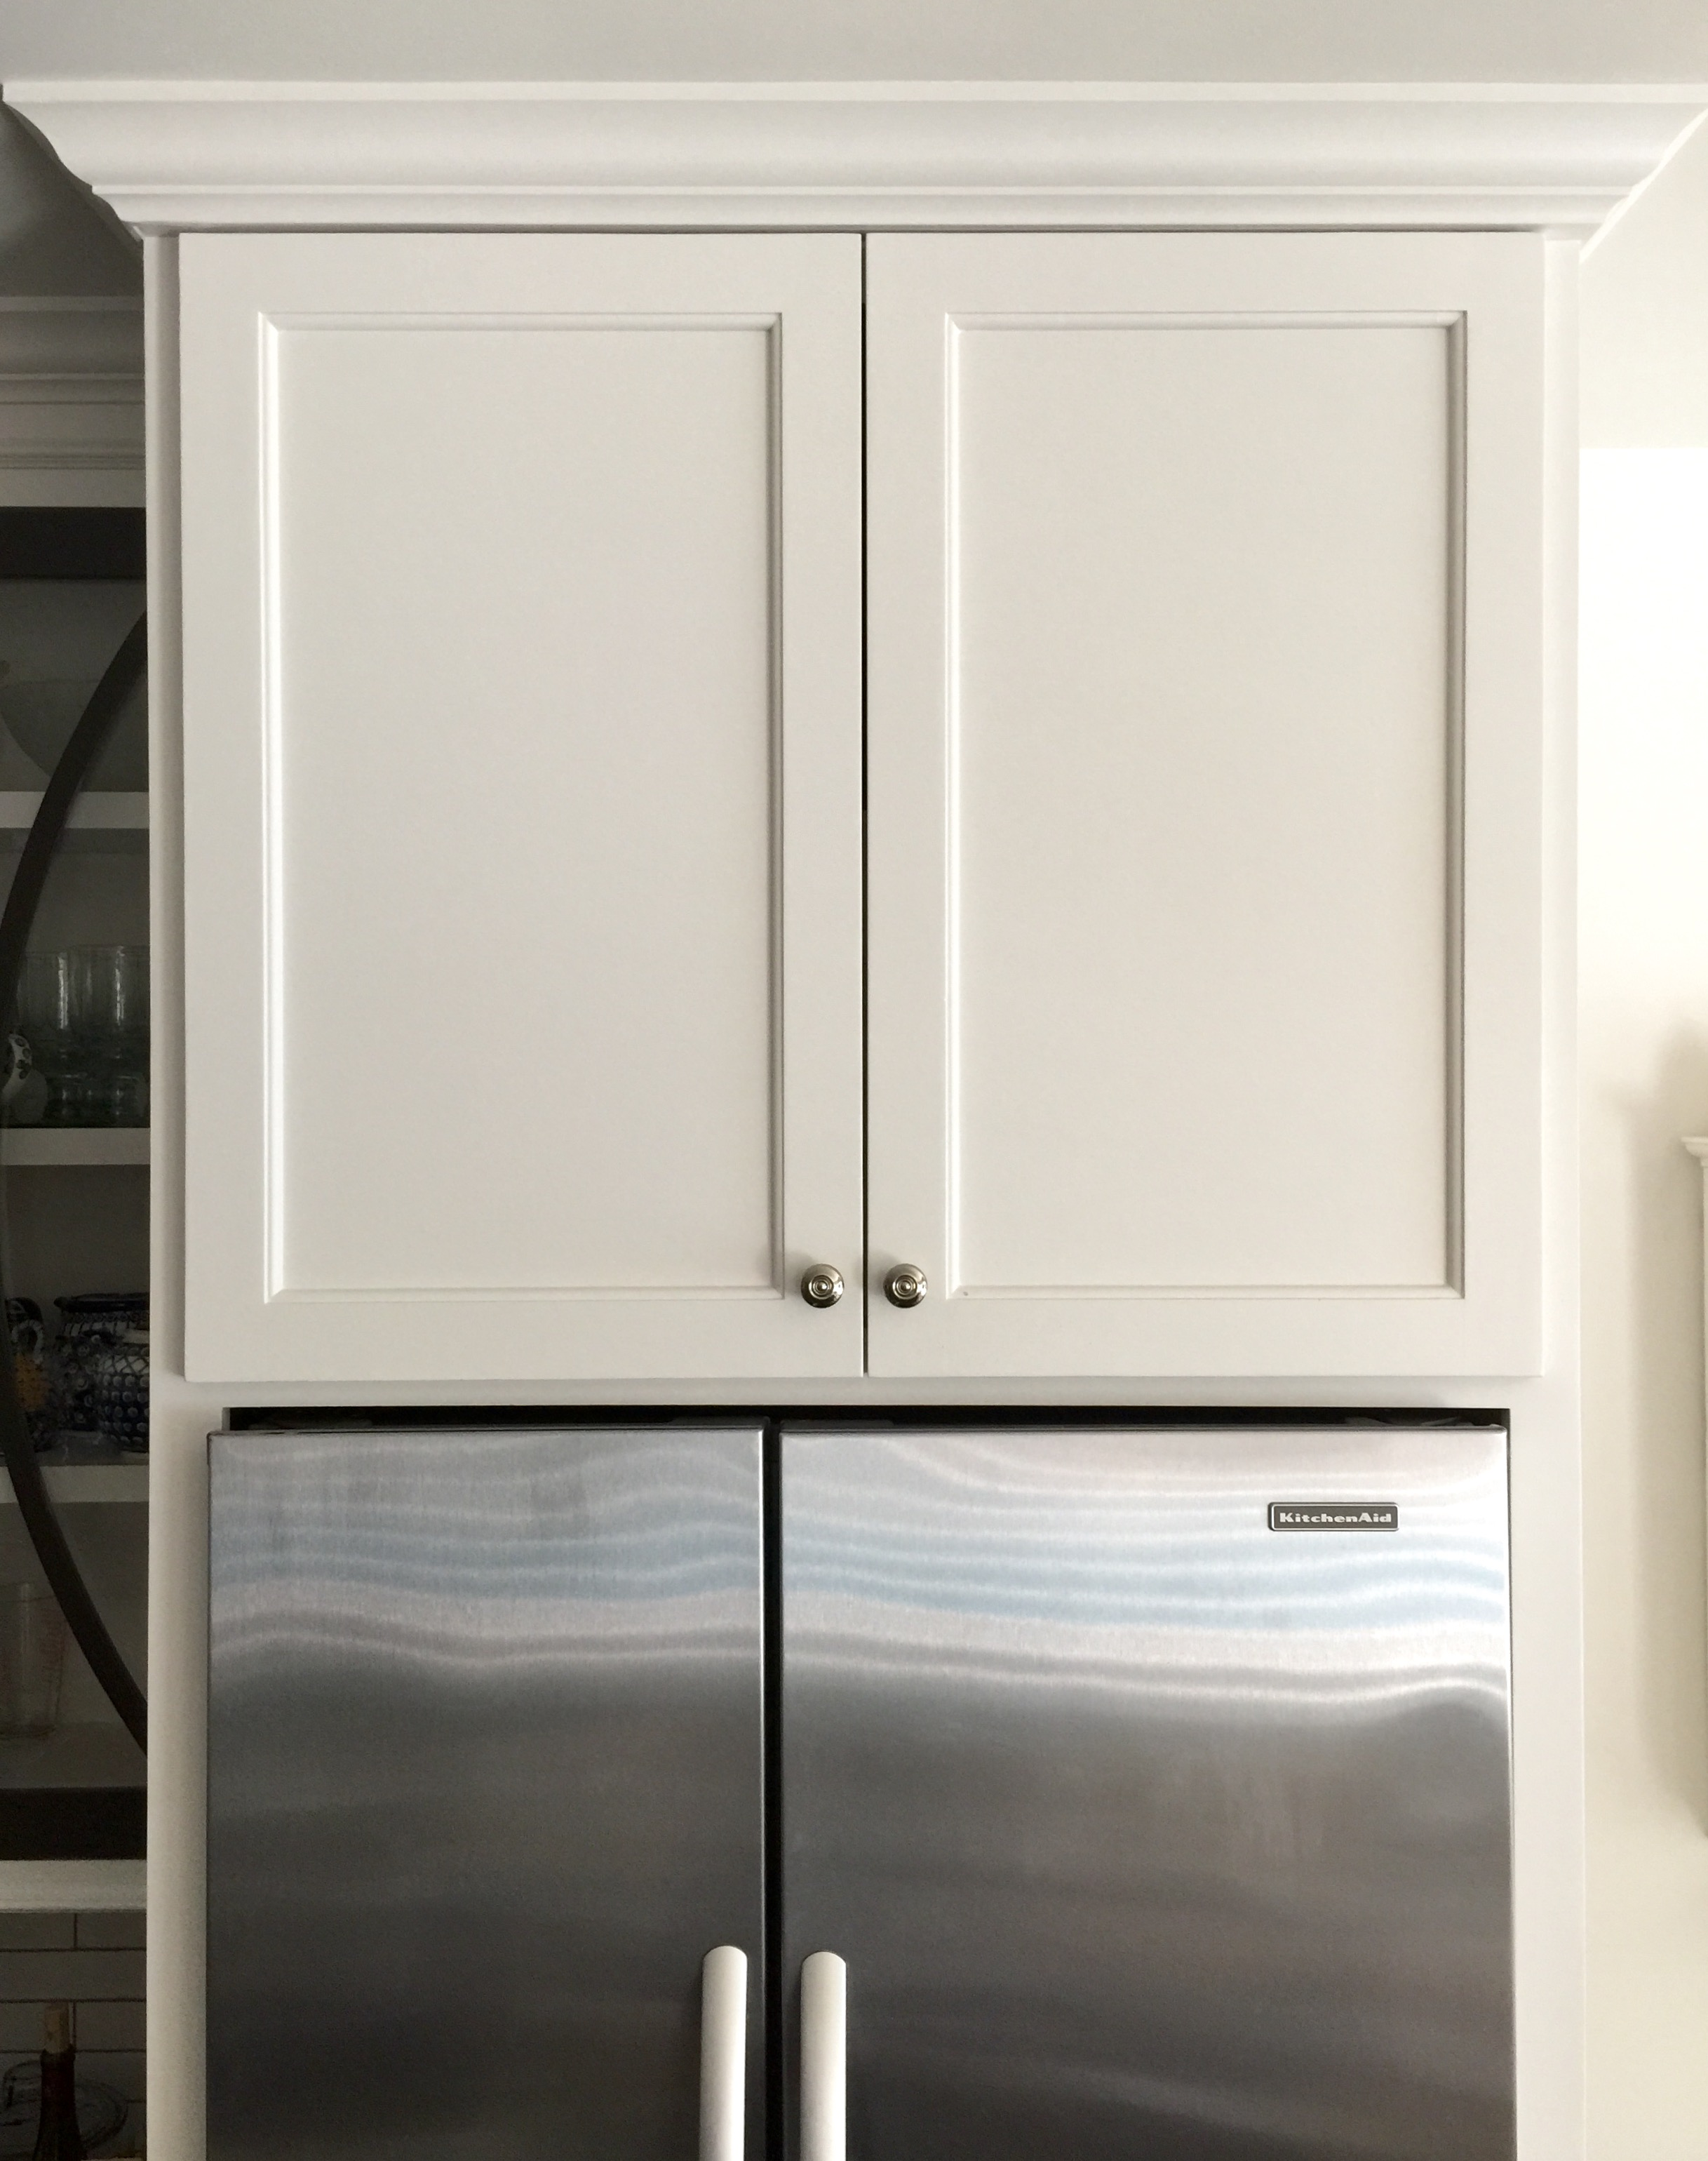 Cabinet enclosing refrigerator - Full overlay style doors